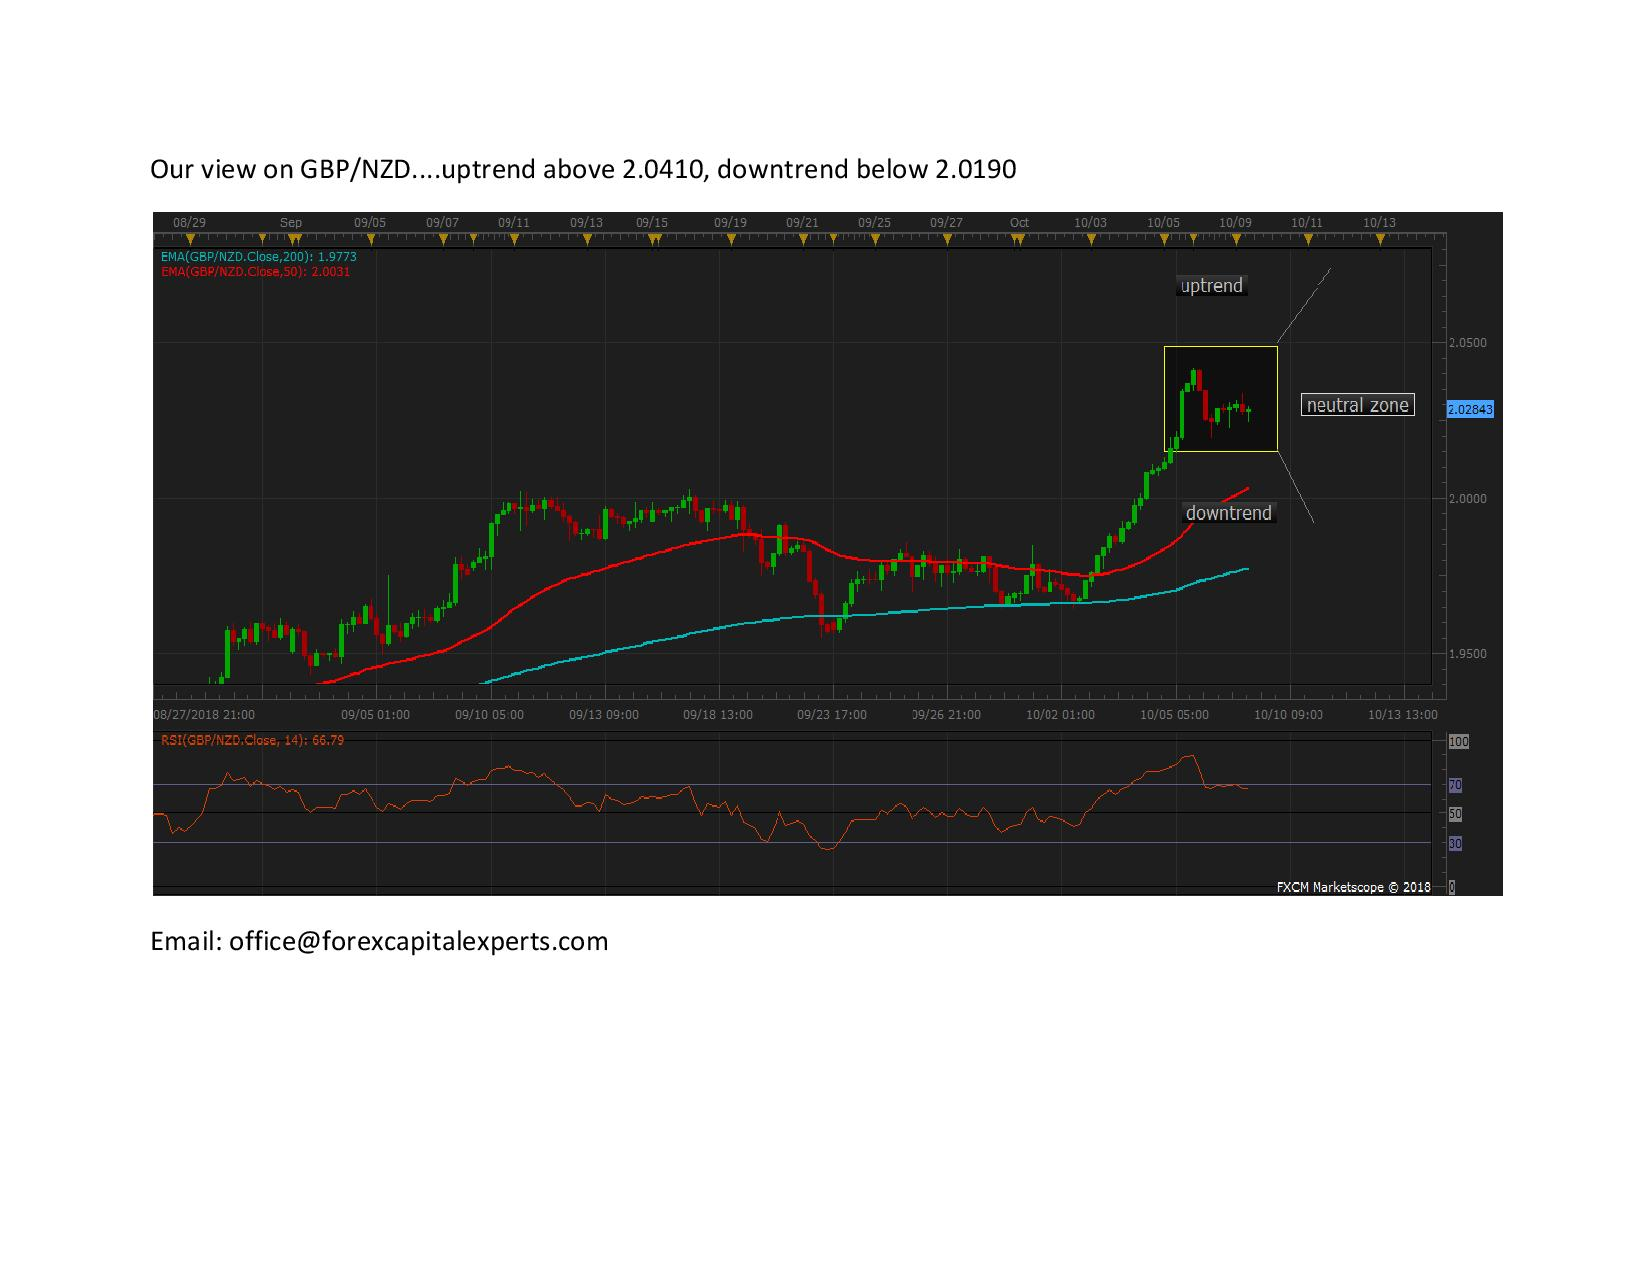 Our view on GBPNZD page 001